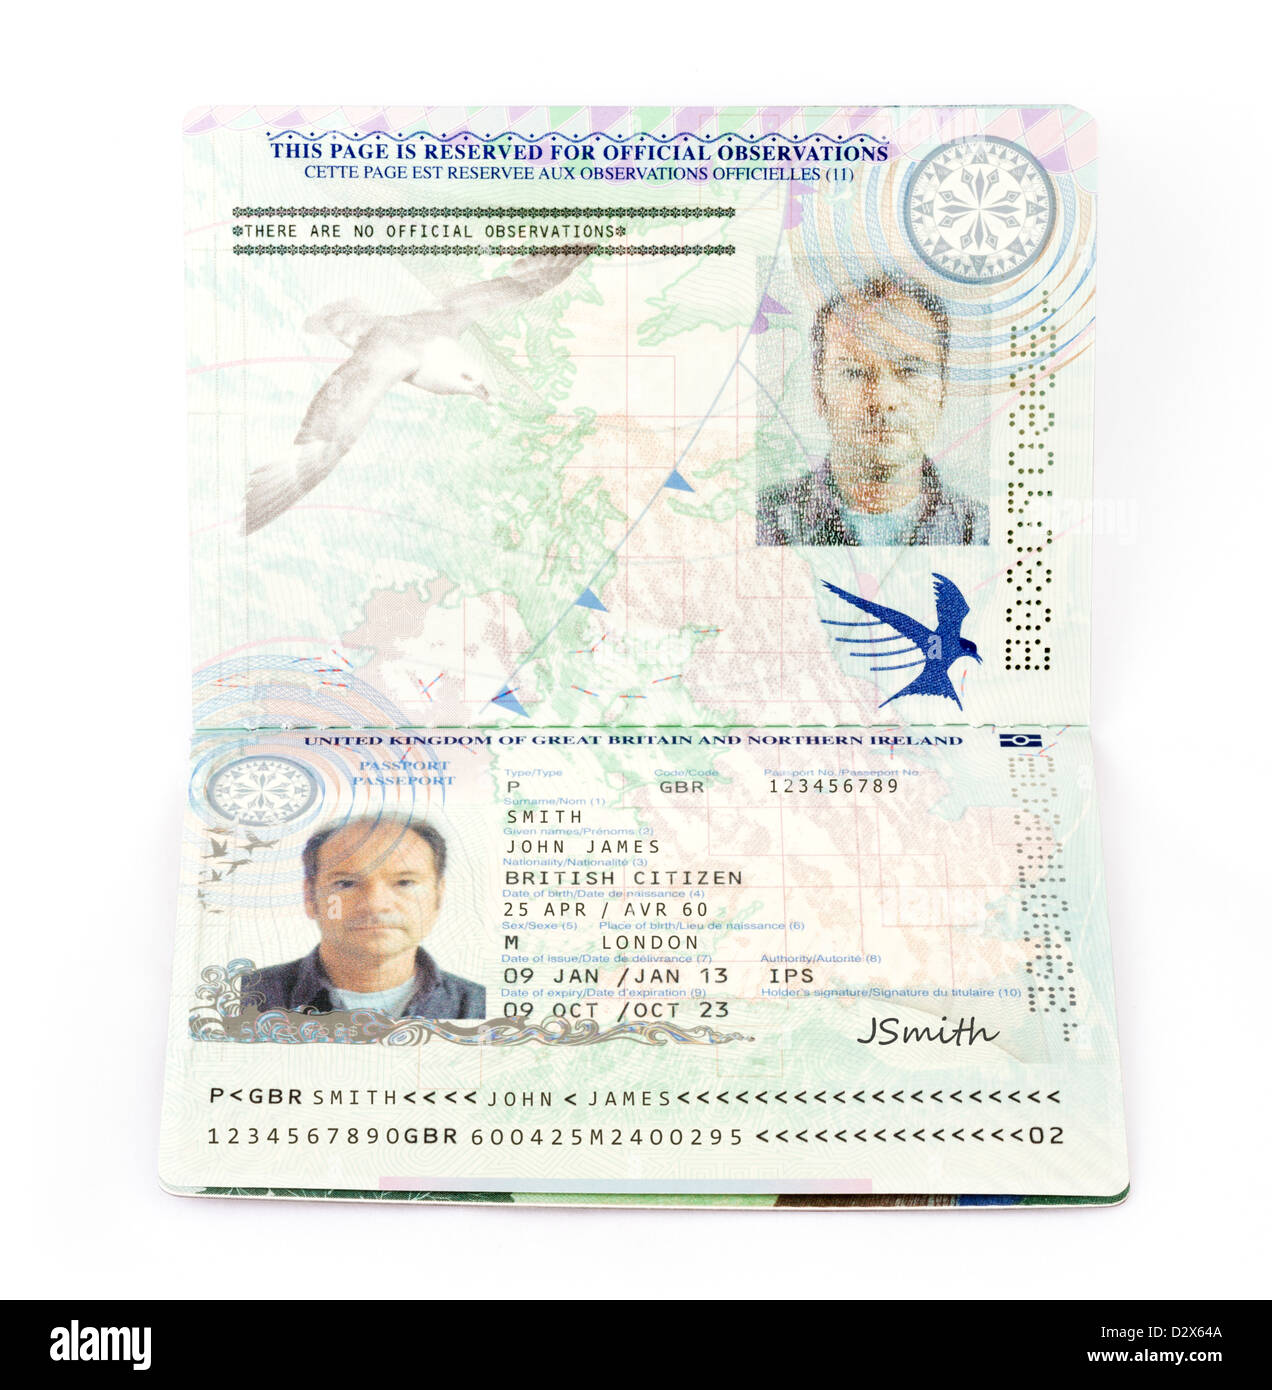 A 2013 European Union biometric passport for the United Kingdom (with fictitious details) - Stock Image